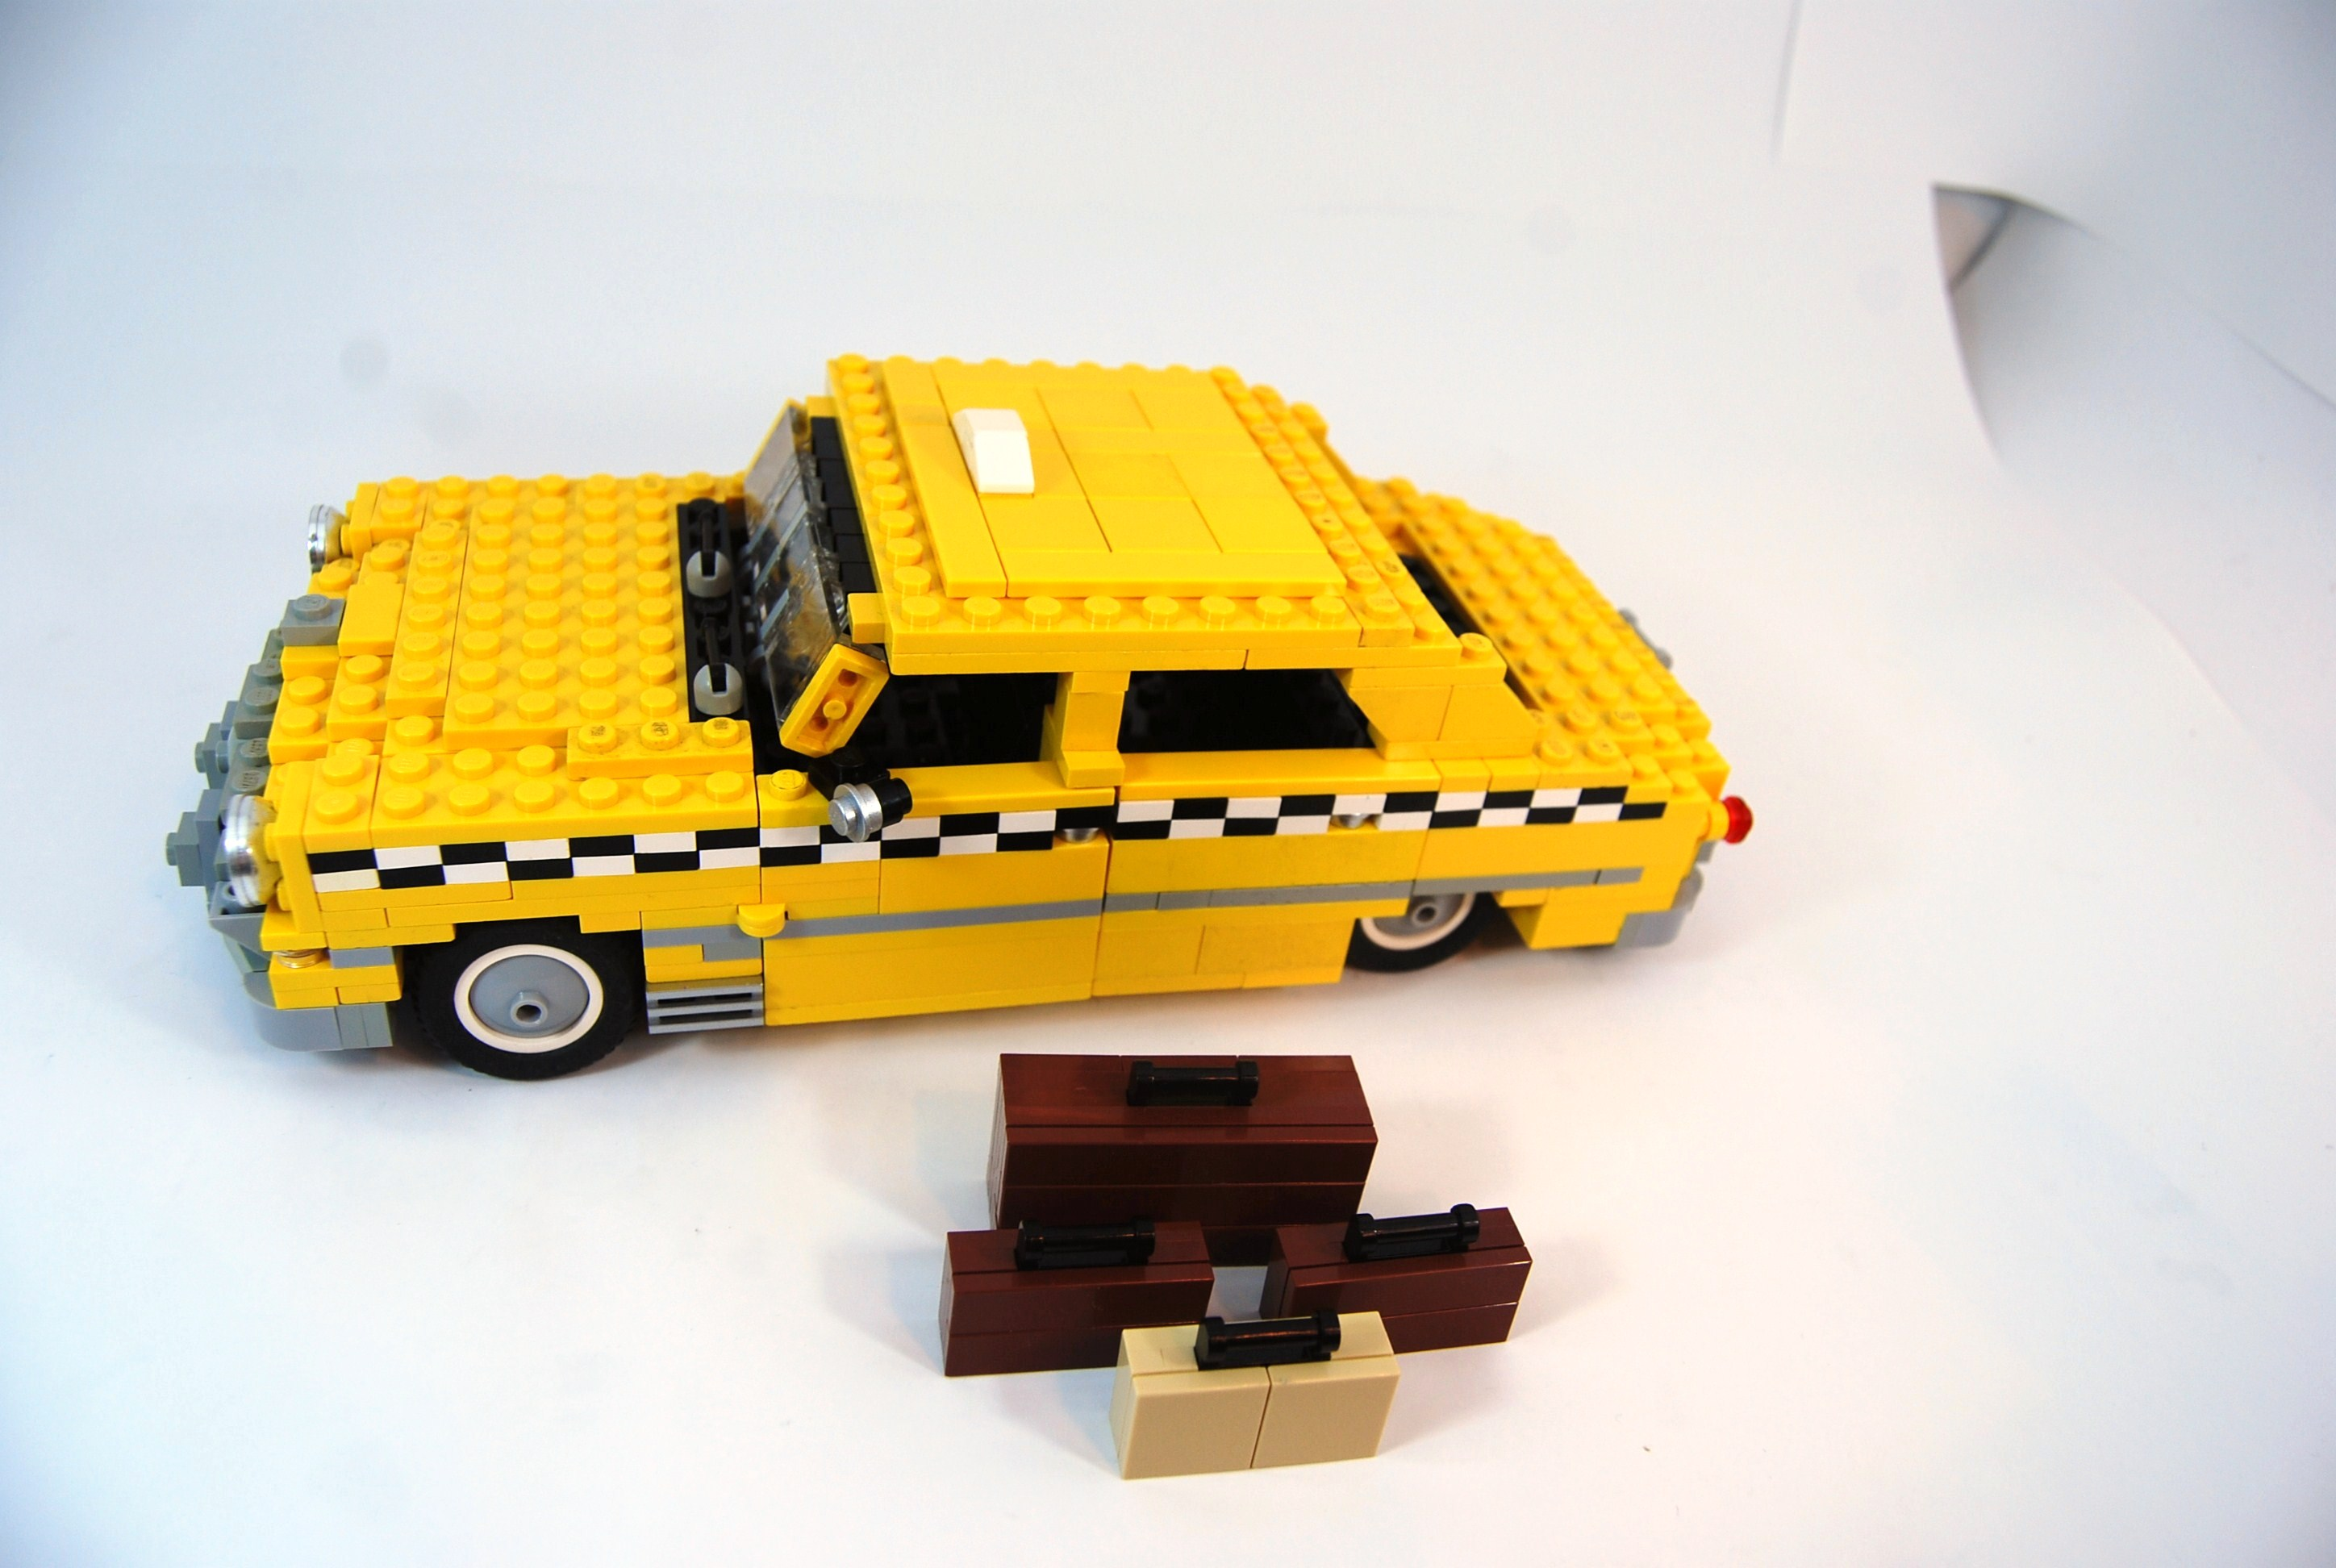 1949_ford_fordor_taxi_with_luggage_02.jpg